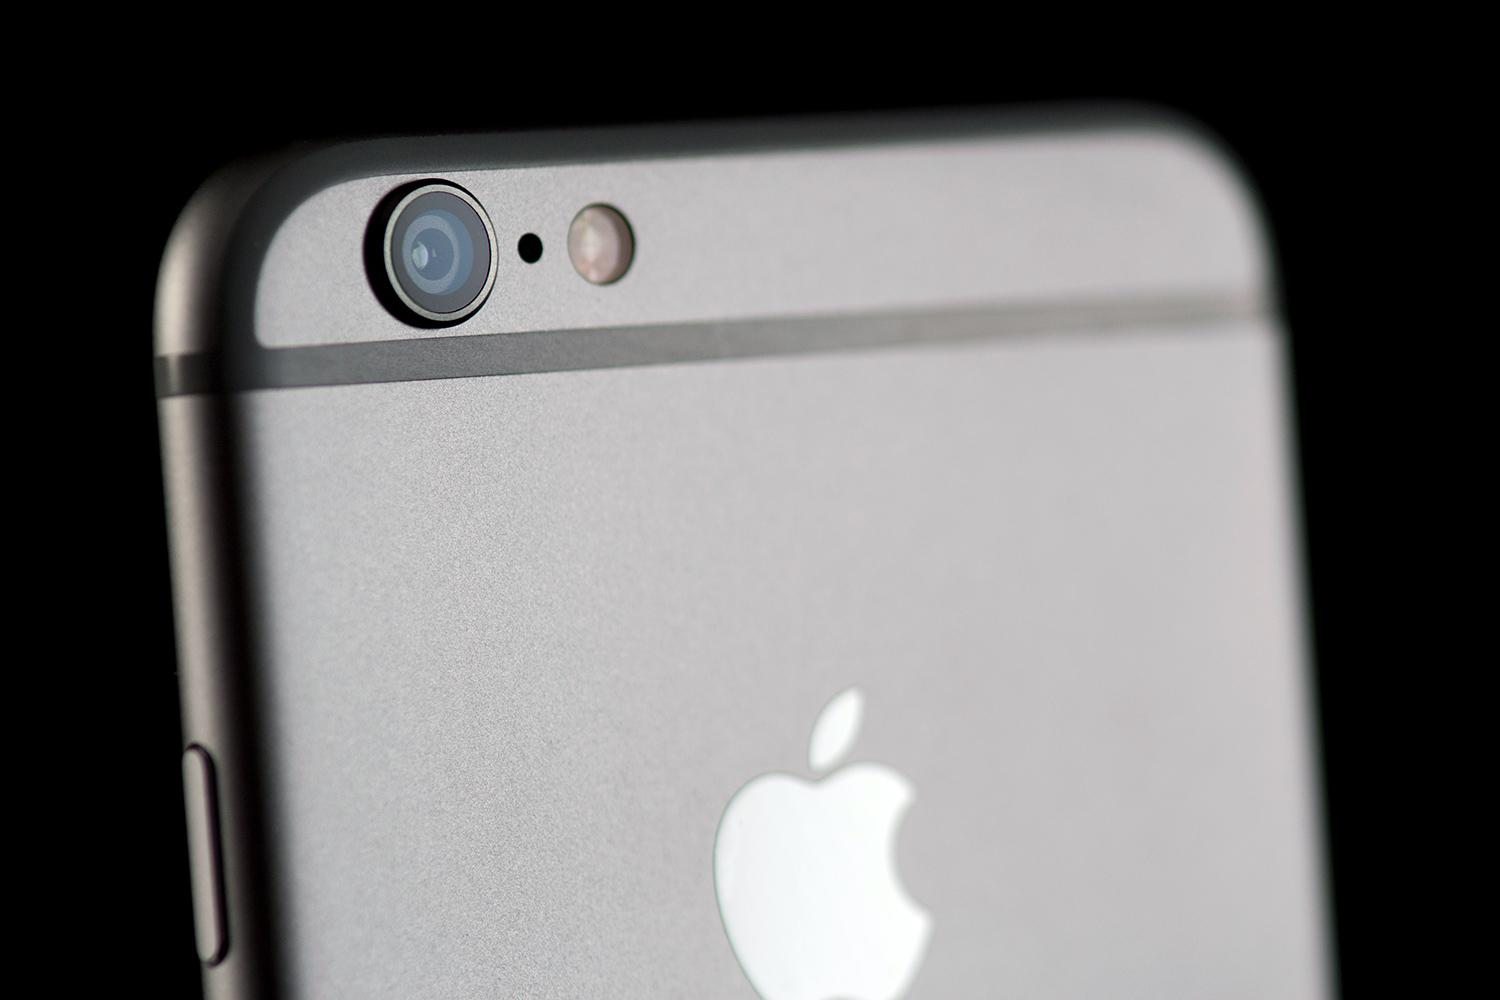 iPhone 6 and iPhone 6 Plus Cameras